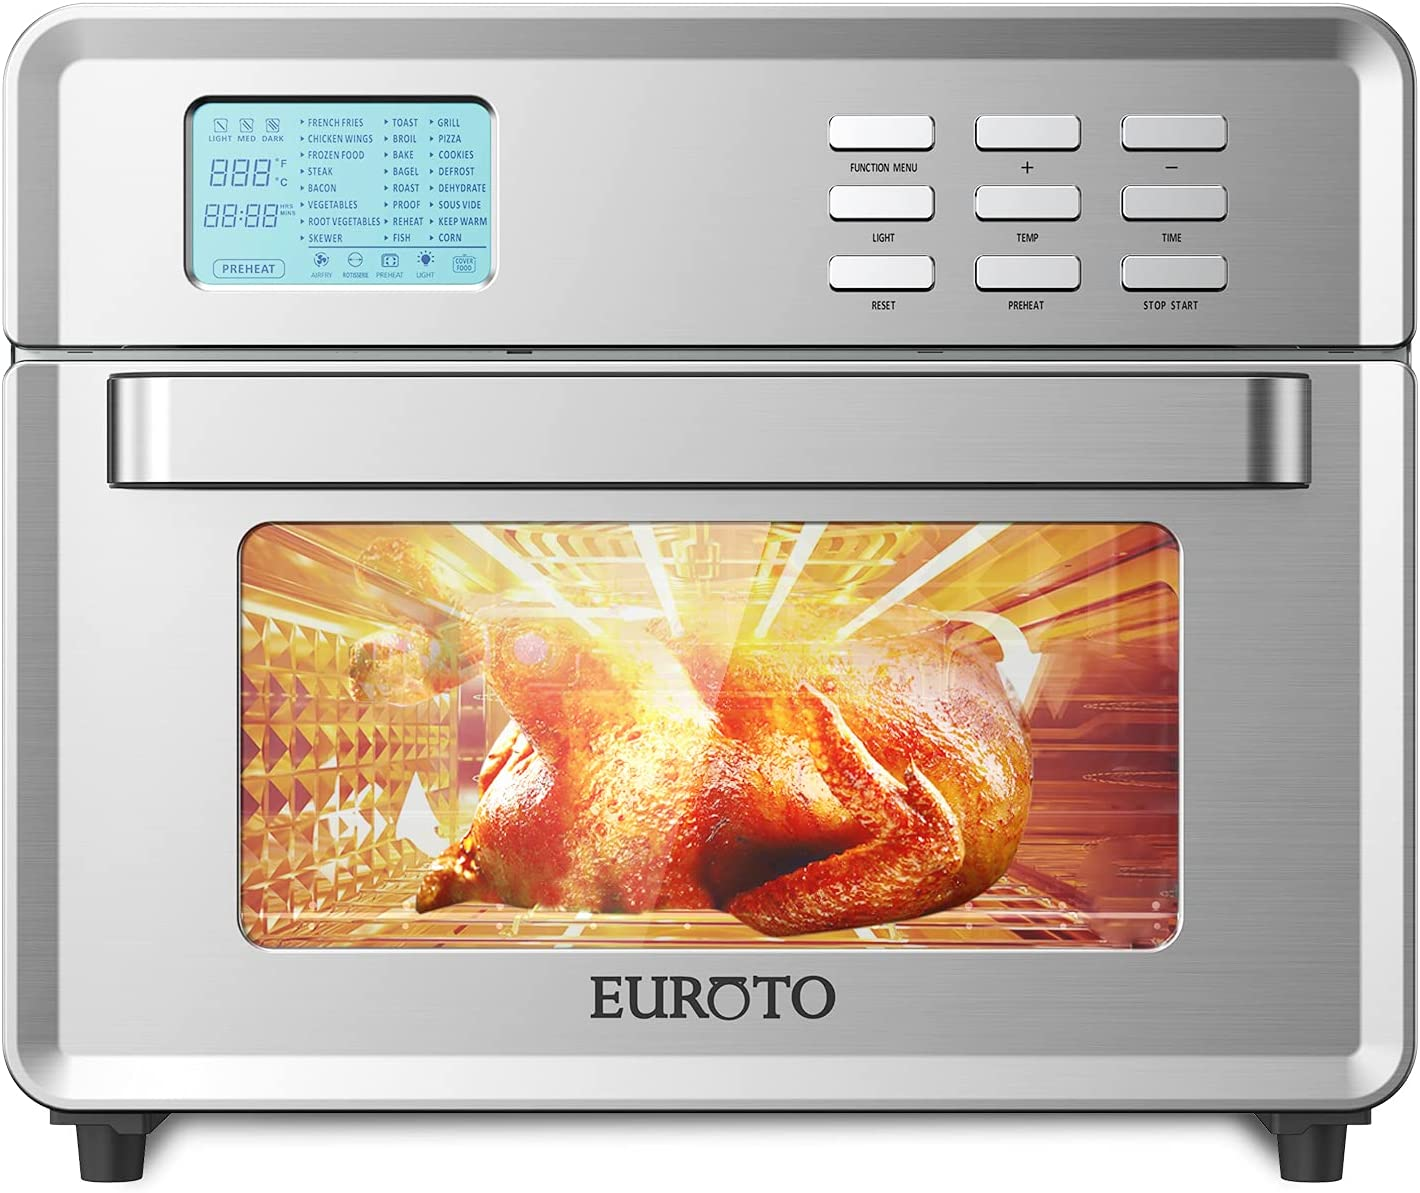 EUROTO Stainless Steel Large Capacity 26.8 qt Air Fryer Oven, 24 in 1 Multi-function 360 Air Circulation Toaster Oven LCD digital Display Glass Window 4 Layer Shelves Included Oven Gloves & Apron